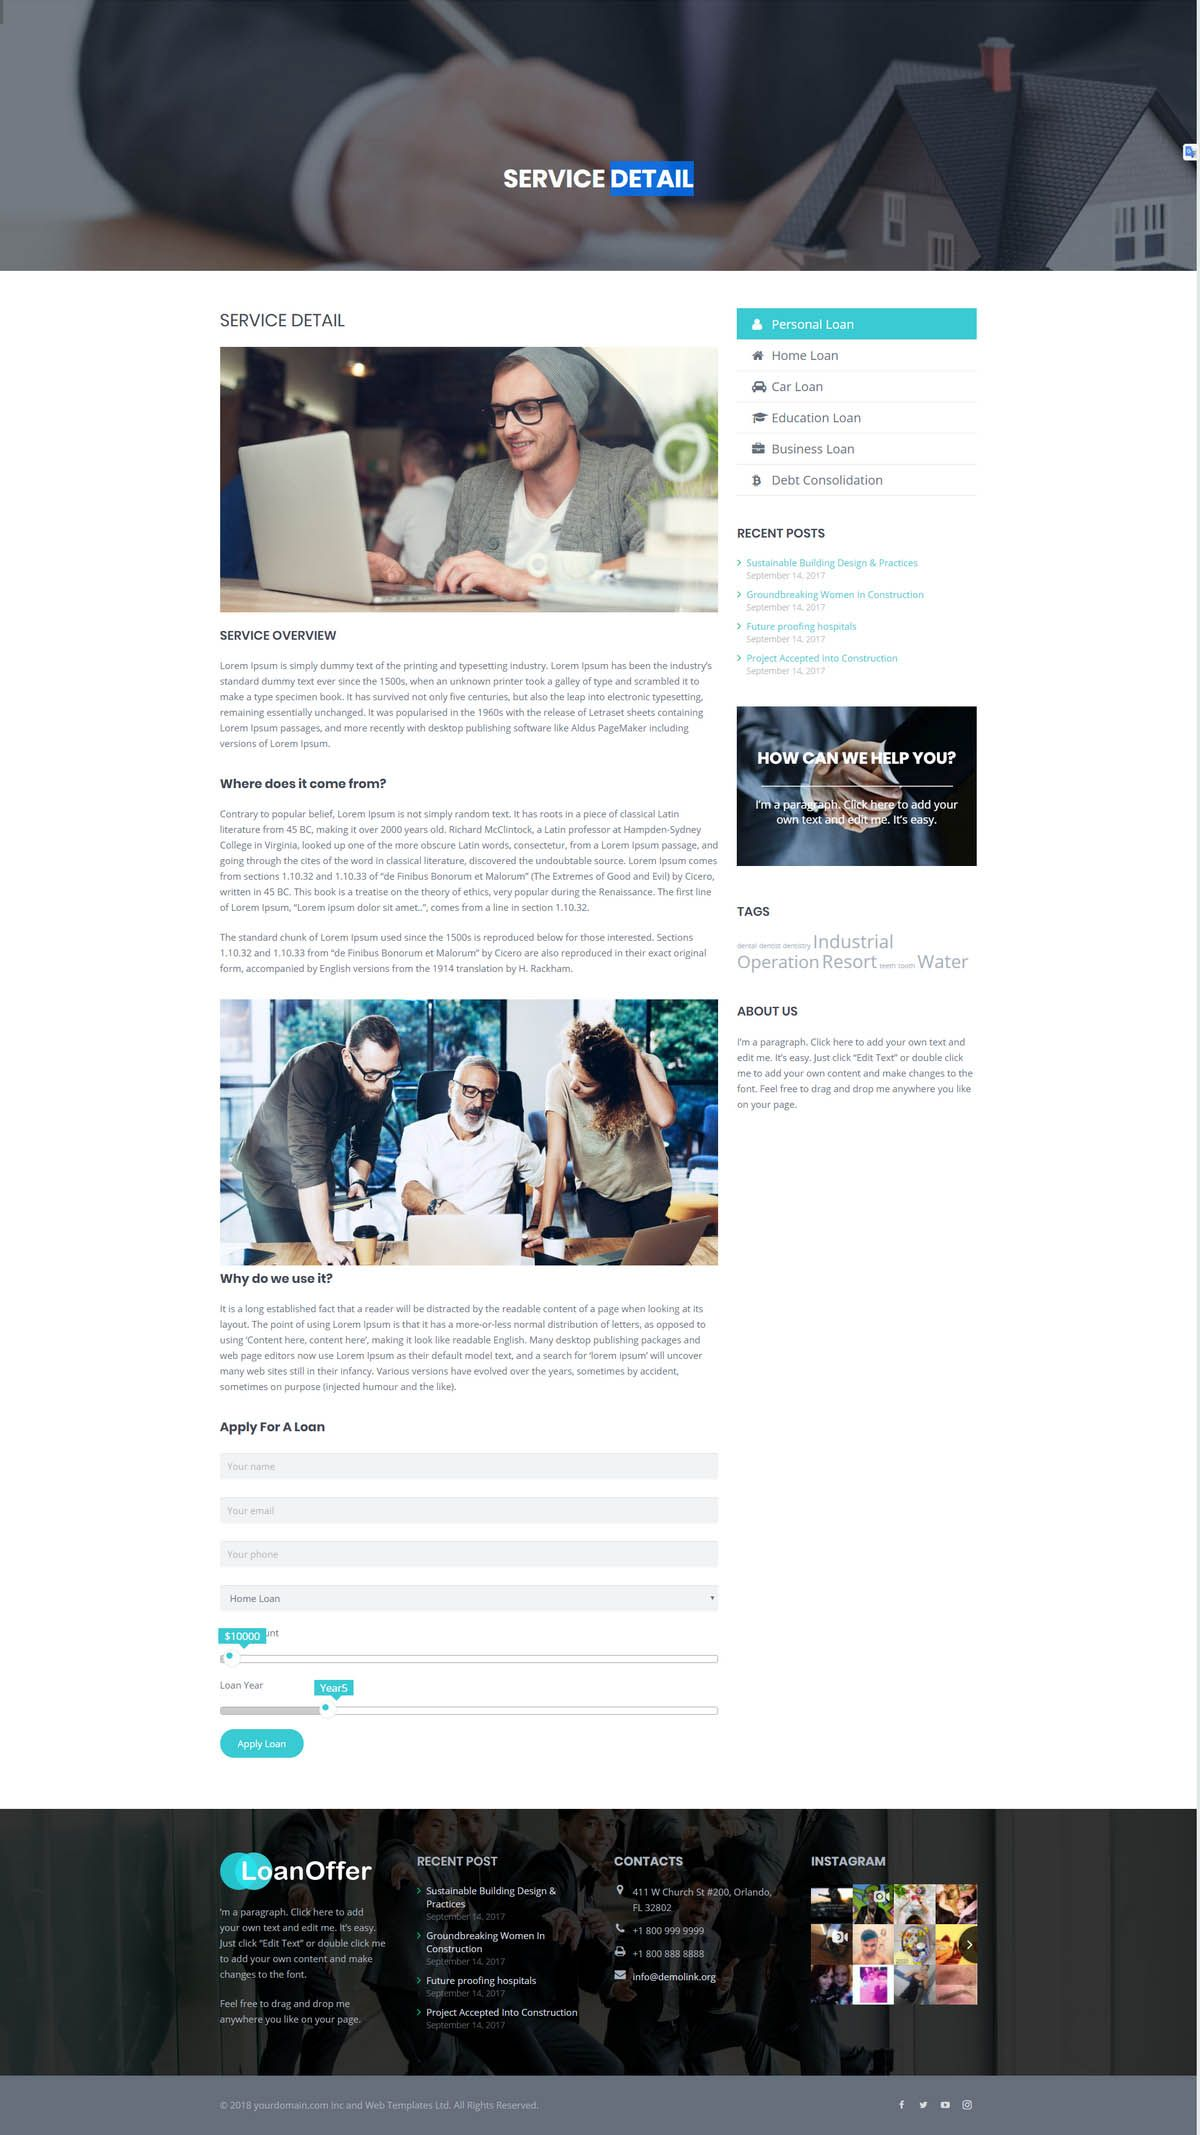 LoanOffer - Business Loan WordPress Theme Screenshot 7